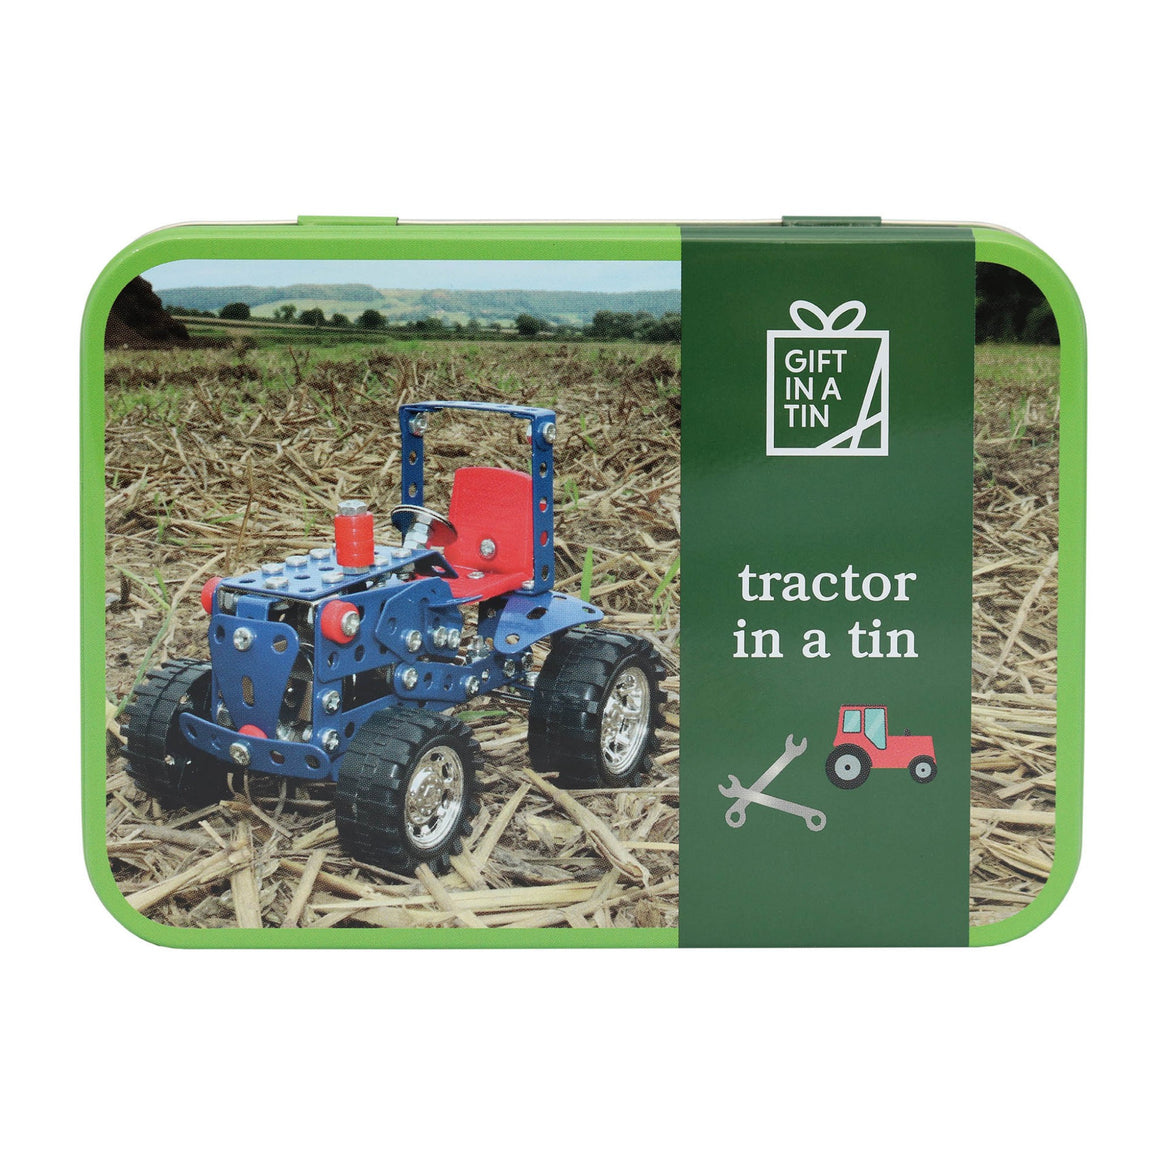 Tractor Gift in a Tin